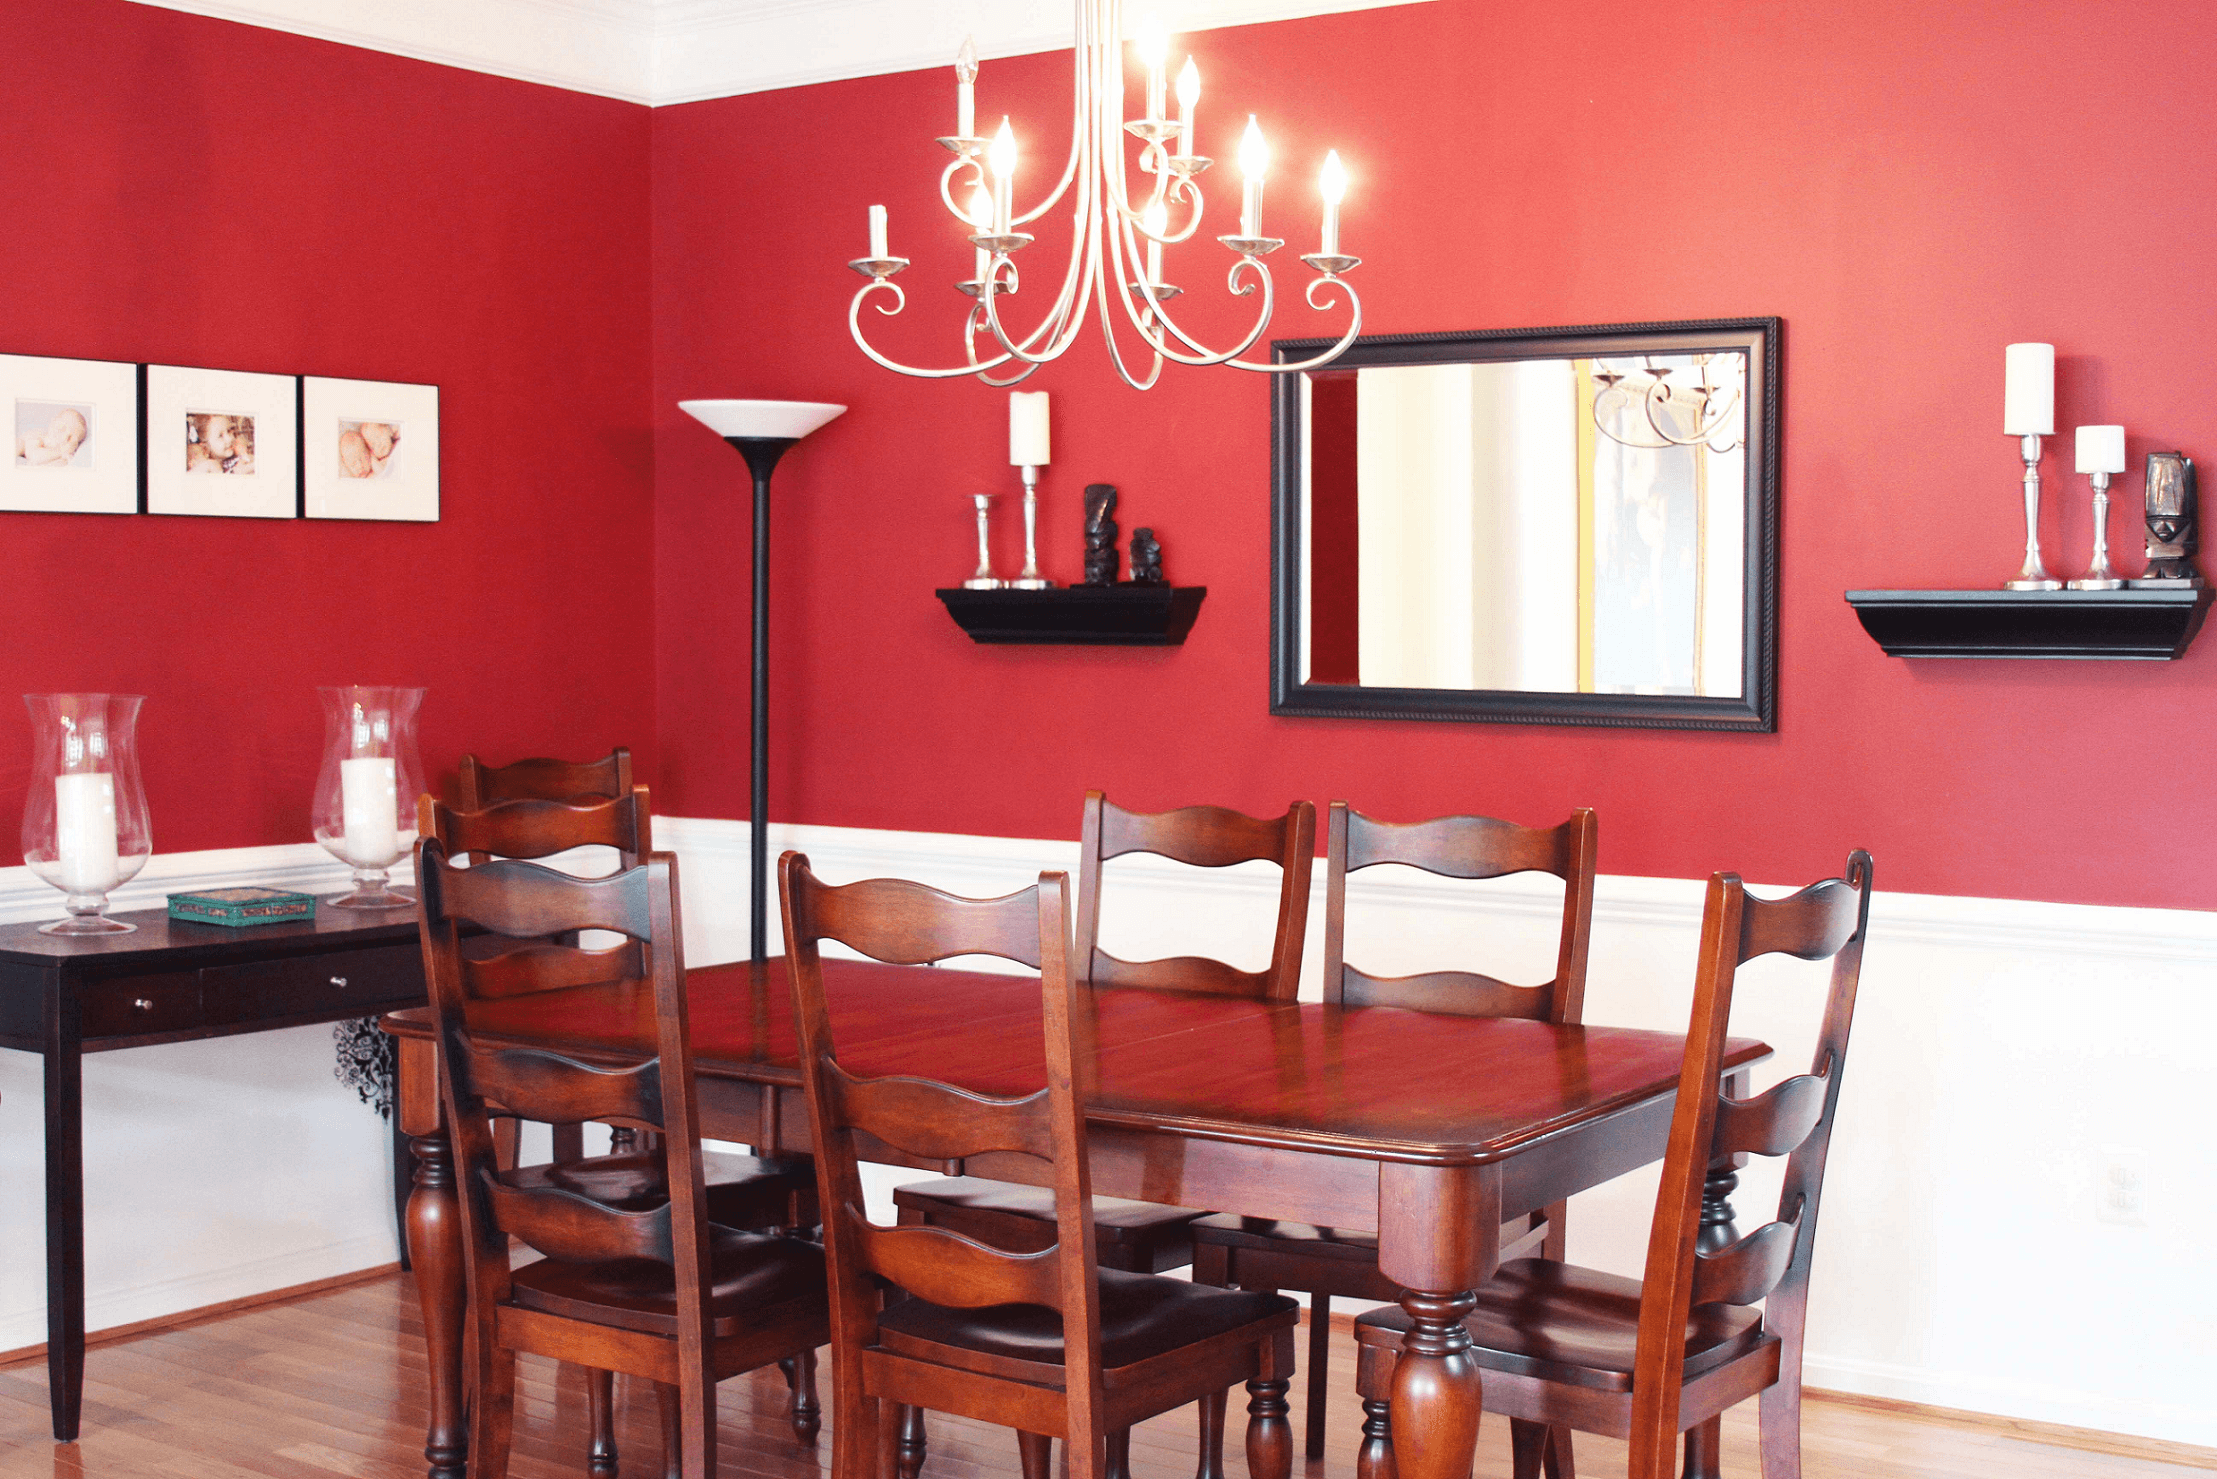 4 elegant dining room wall d cor ideas for Elegant dining room decor